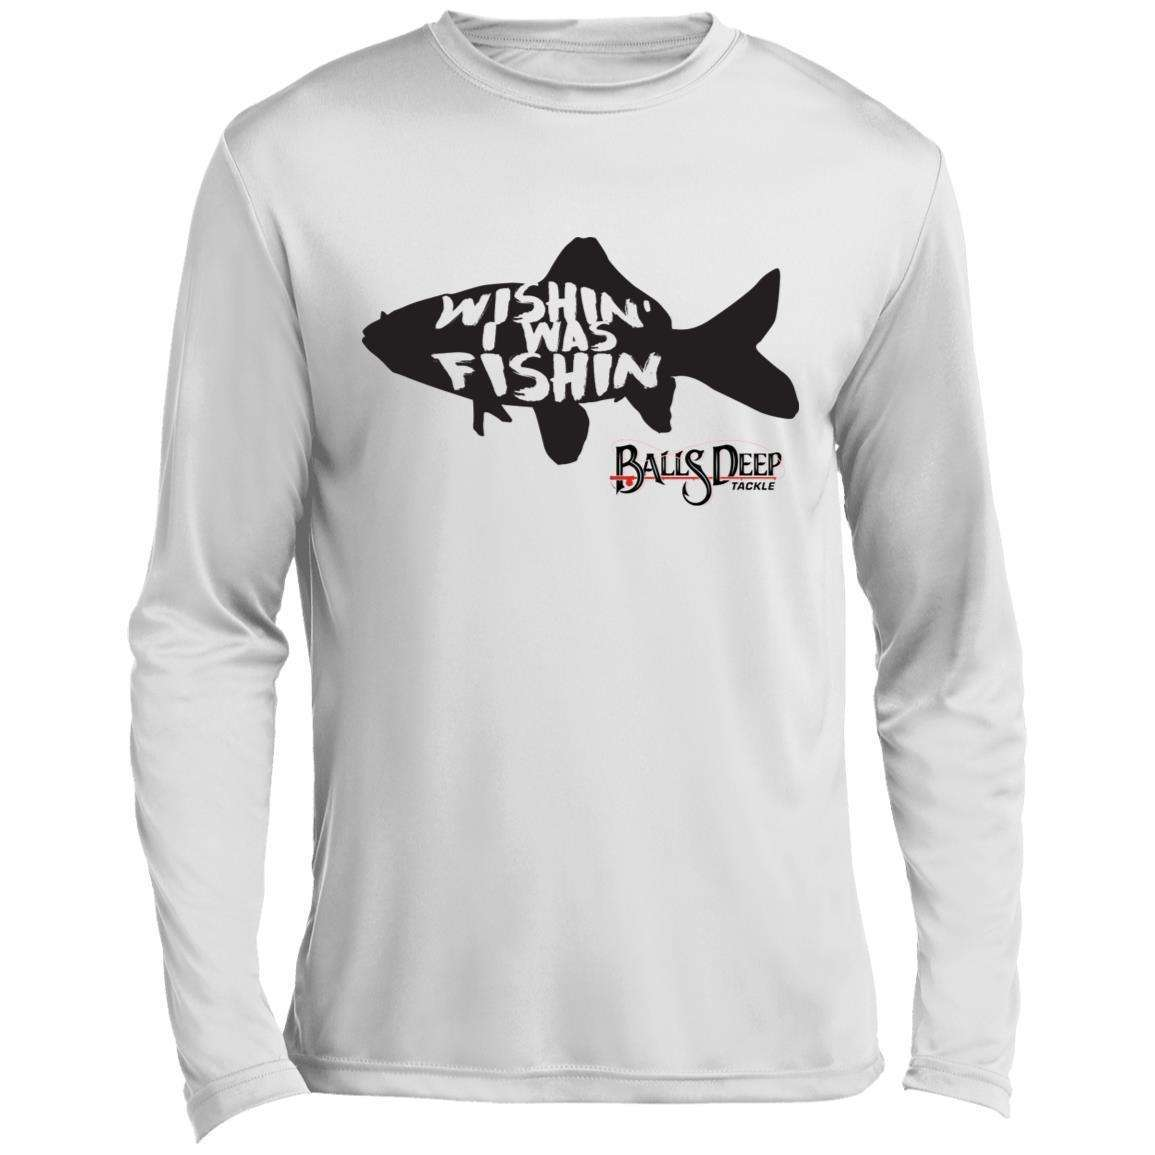 Wishin' I Was Fishin - Fish Performance Long Sleeve